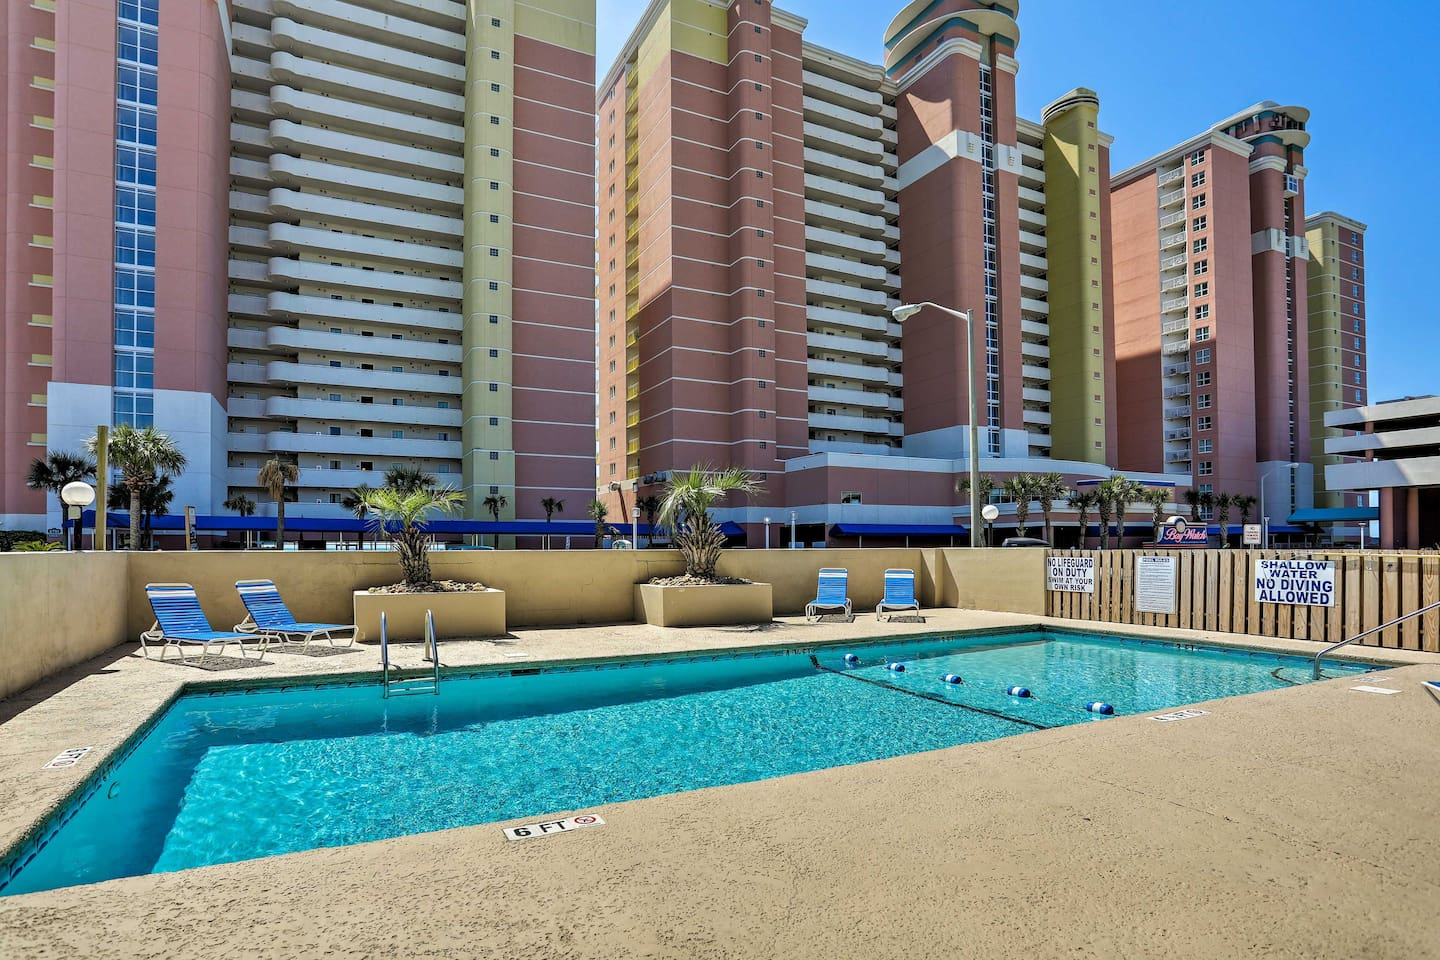 Relax by the pool at this North Myrtle Beach vacation rental condo!